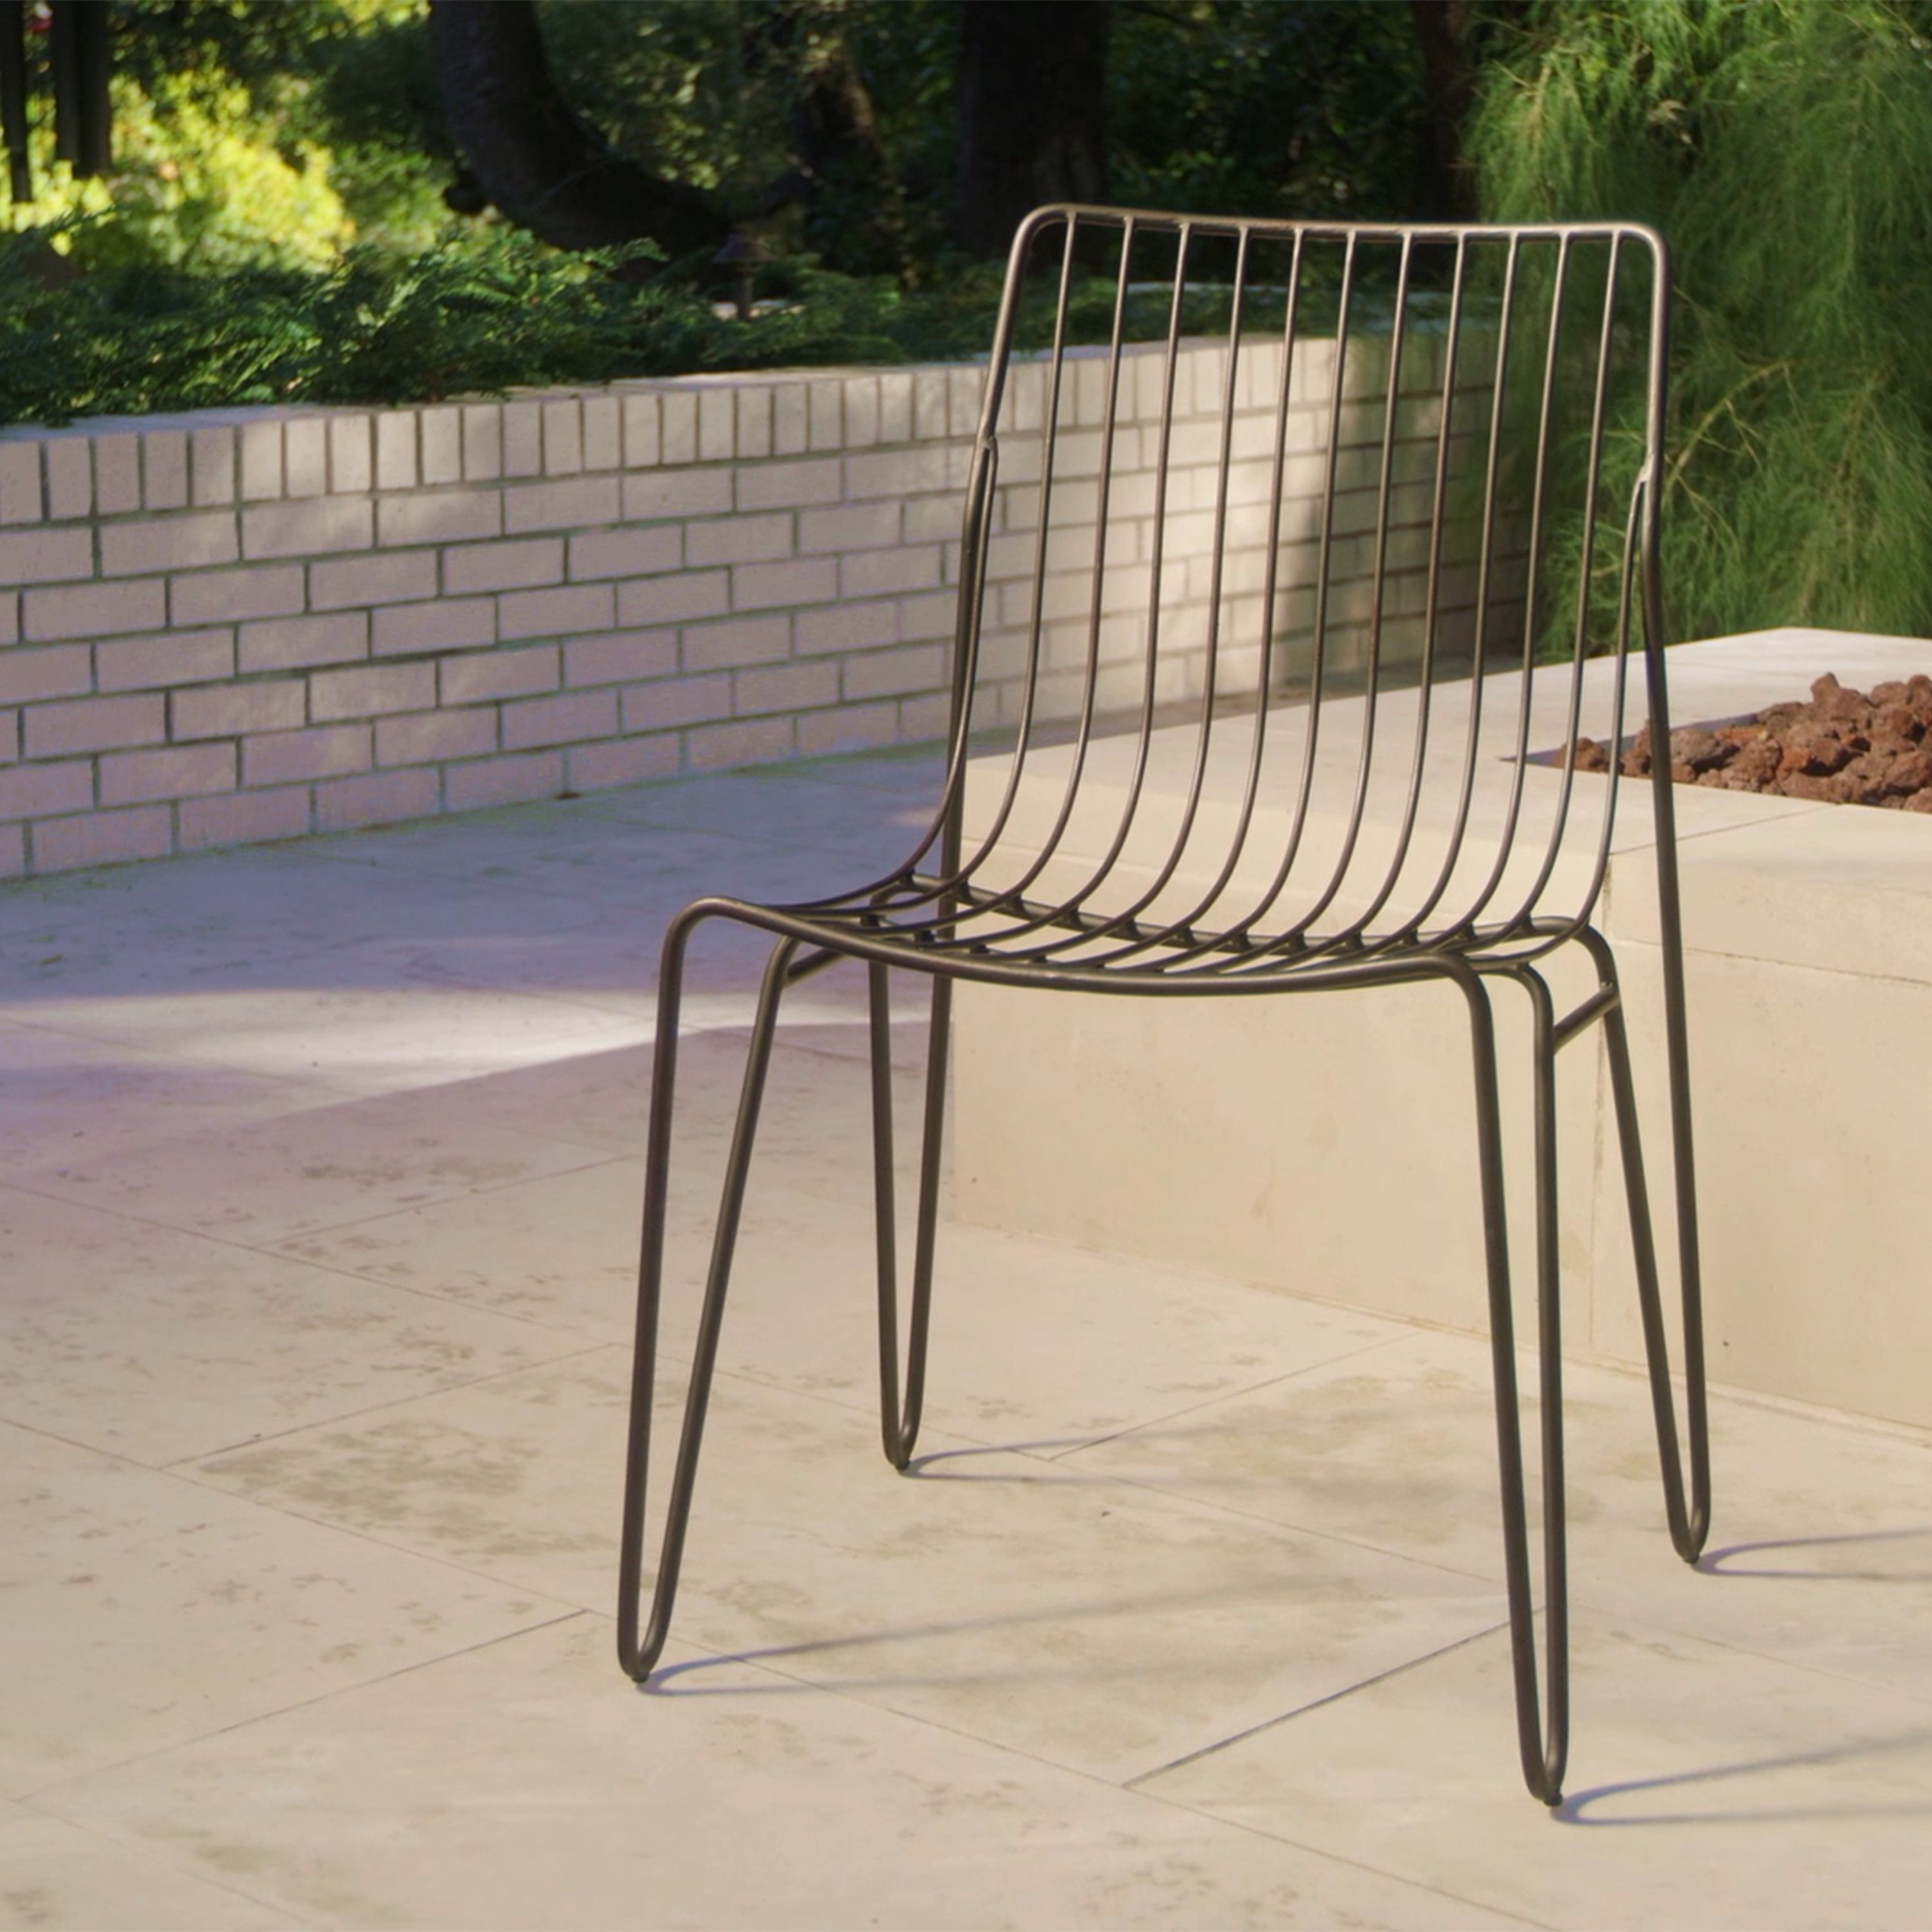 Vintage mid century modern metal folding wire mesh patio chairs - Featuring Mid Century Inspired Hairpin Legs Our Metal Chairs Stack For Compact Storage